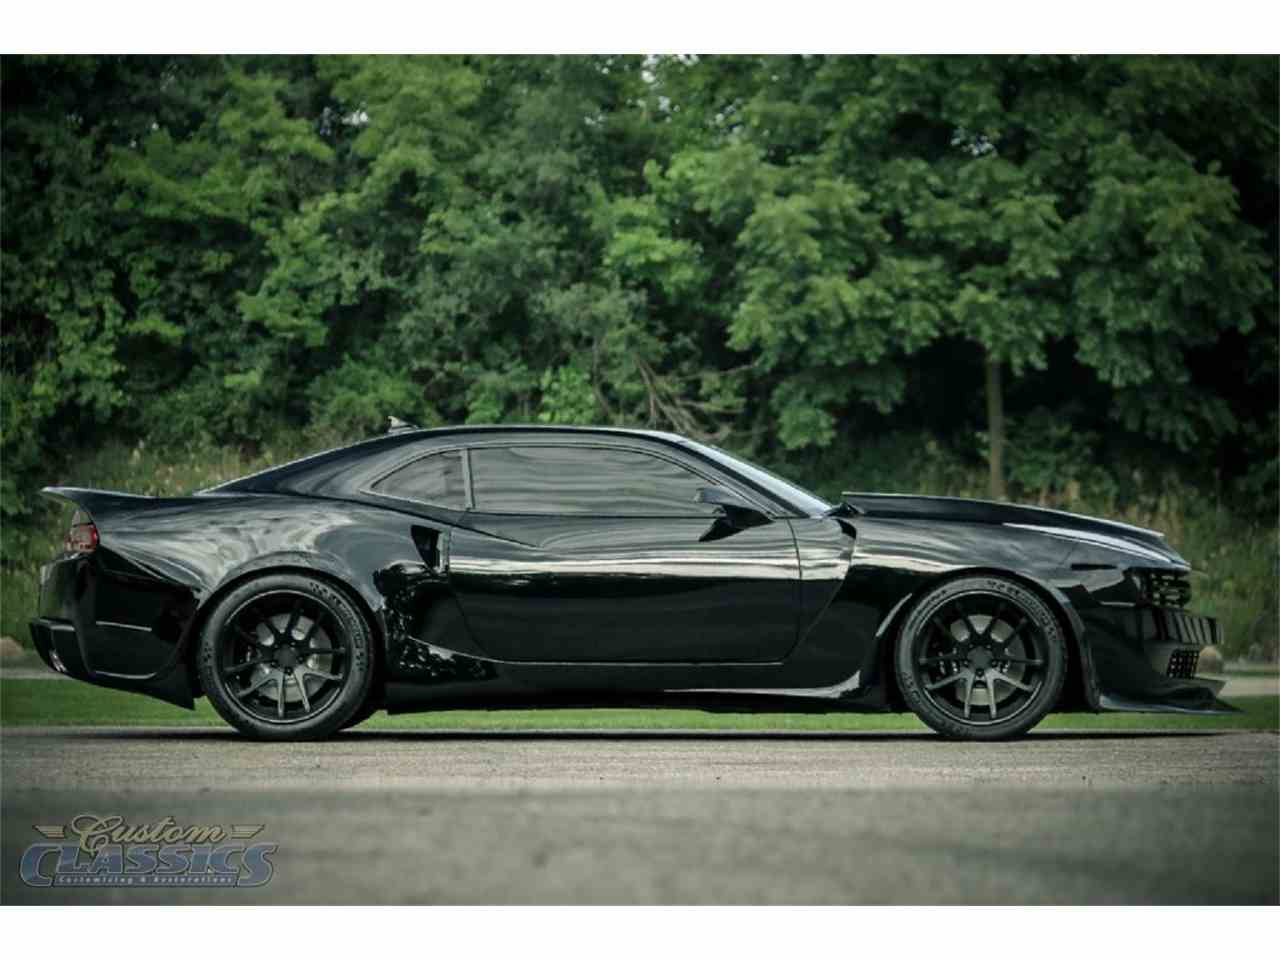 Large Picture of '14 Chevrolet Camaro ZL-1 Widebody located in Illinois Offered by Custom Classics - HK4B